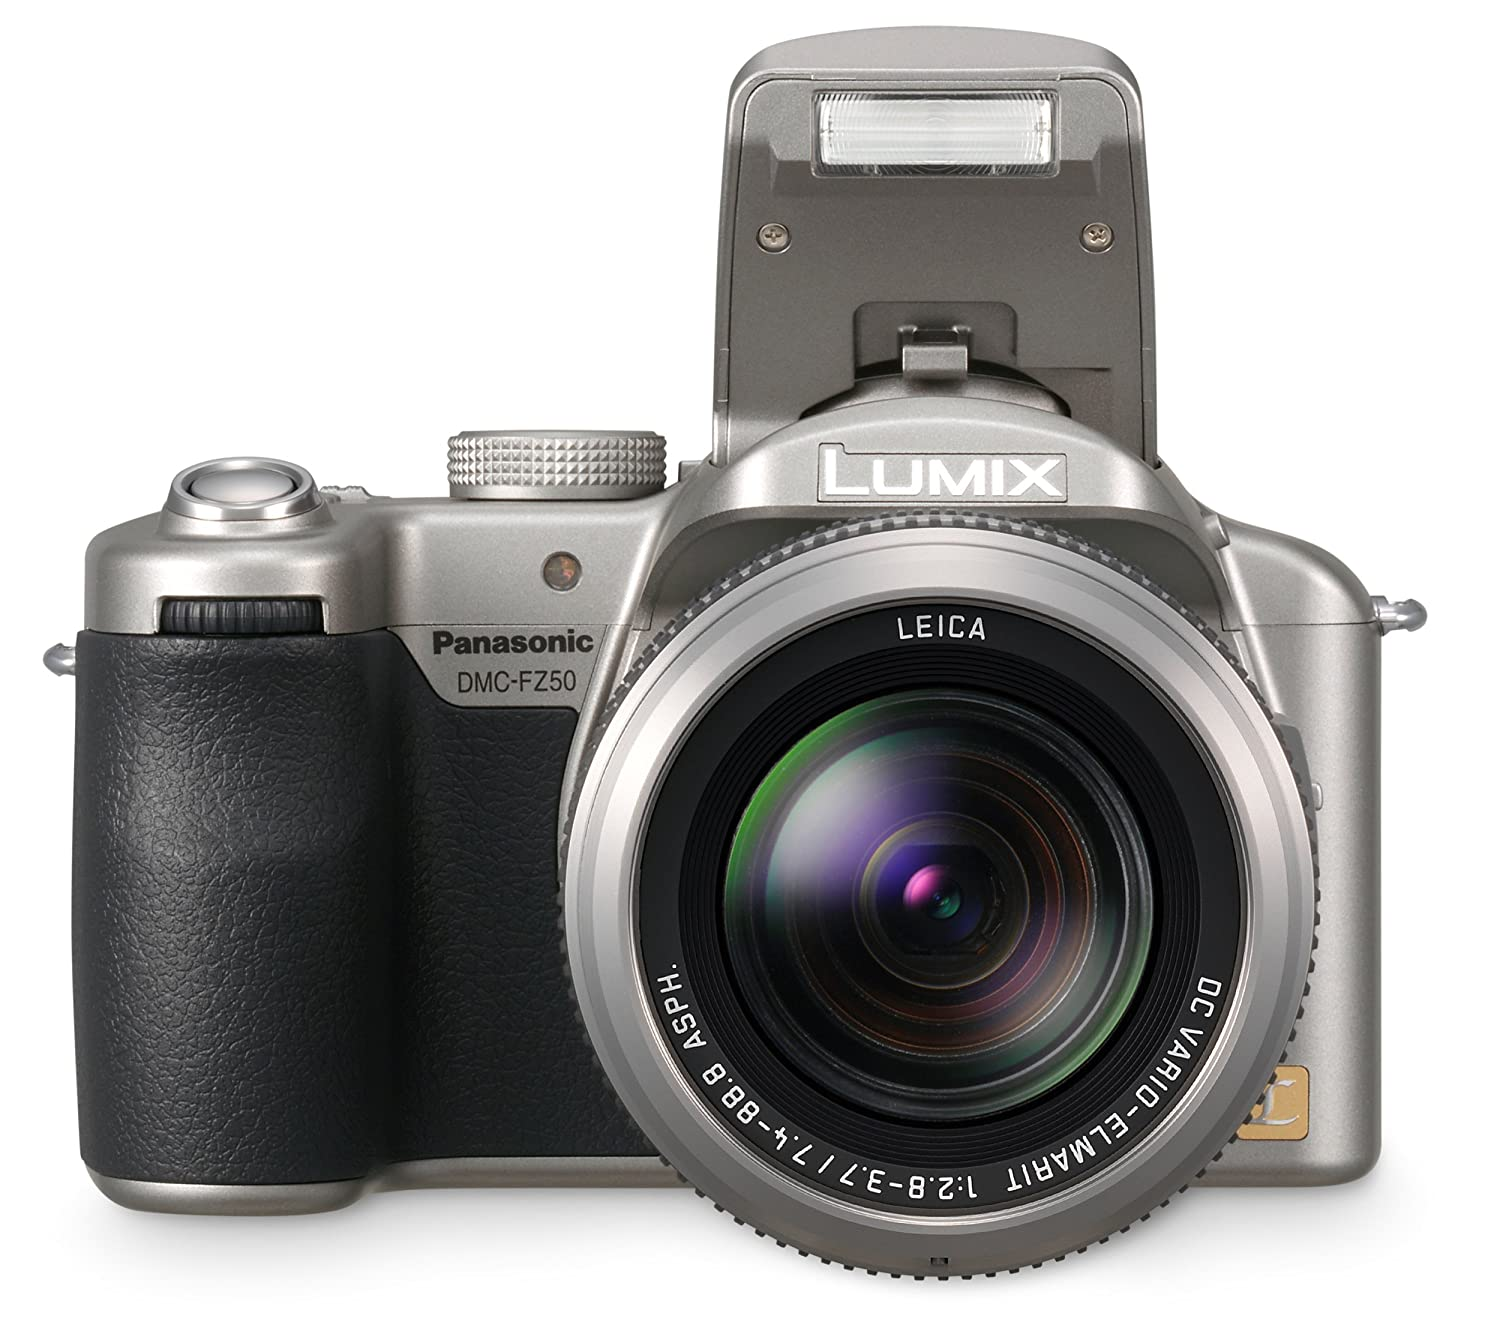 Amazon.com : Panasonic DMC-FZ50S 10.1MP Digital Camera with 12x Optical  Image Stabilized Zoom (Silver) : Point And Shoot Digital Cameras : Camera &  Photo